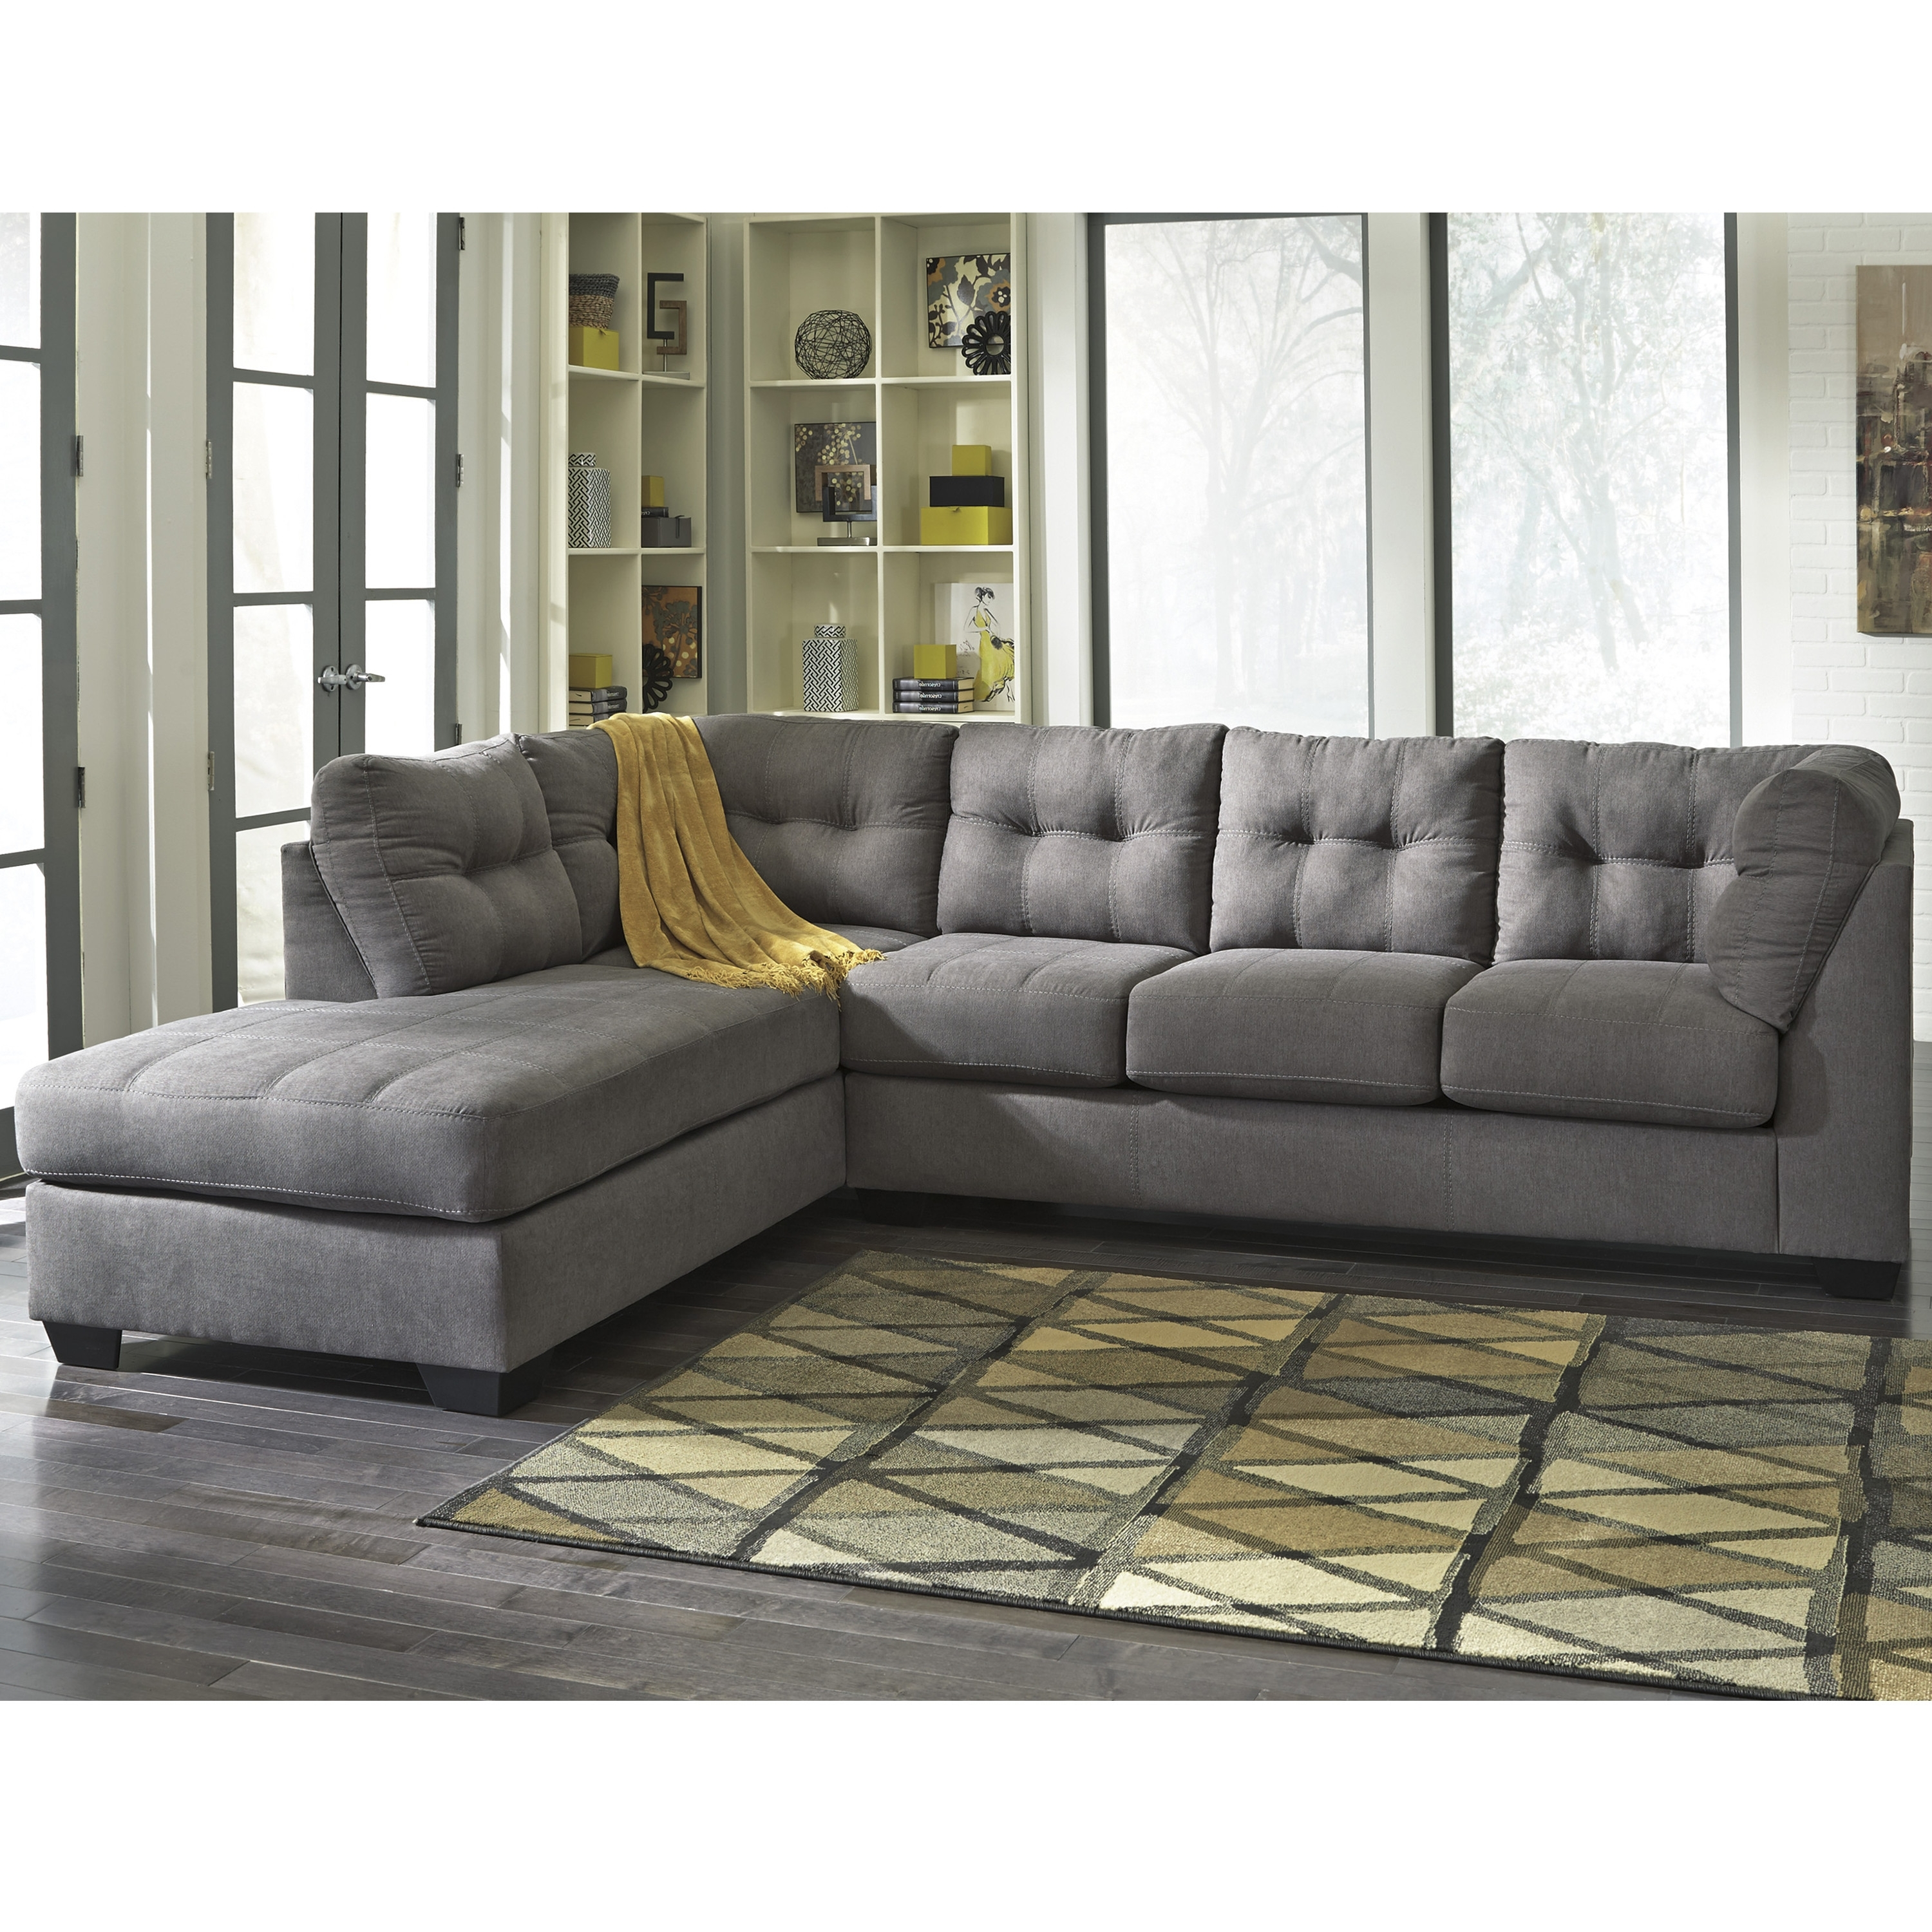 Furniture: Cool Cheap Sectional For Elegant Living Room Design Regarding Lucy Dark Grey 2 Piece Sleeper Sectionals With Laf Chaise (Image 4 of 25)